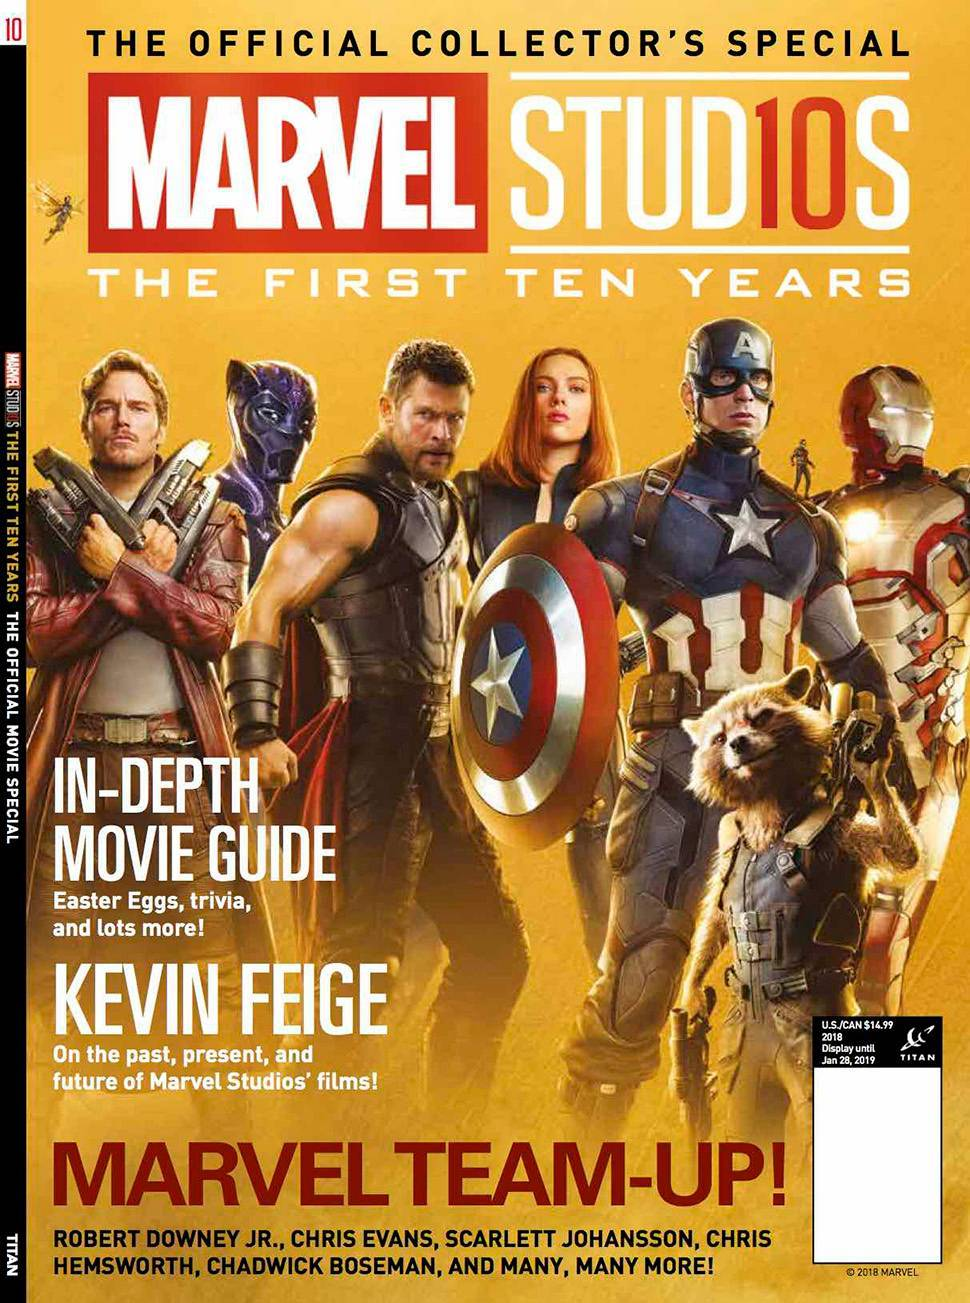 Marvel-Studios-First-Ten-Years-Magazine-Cover